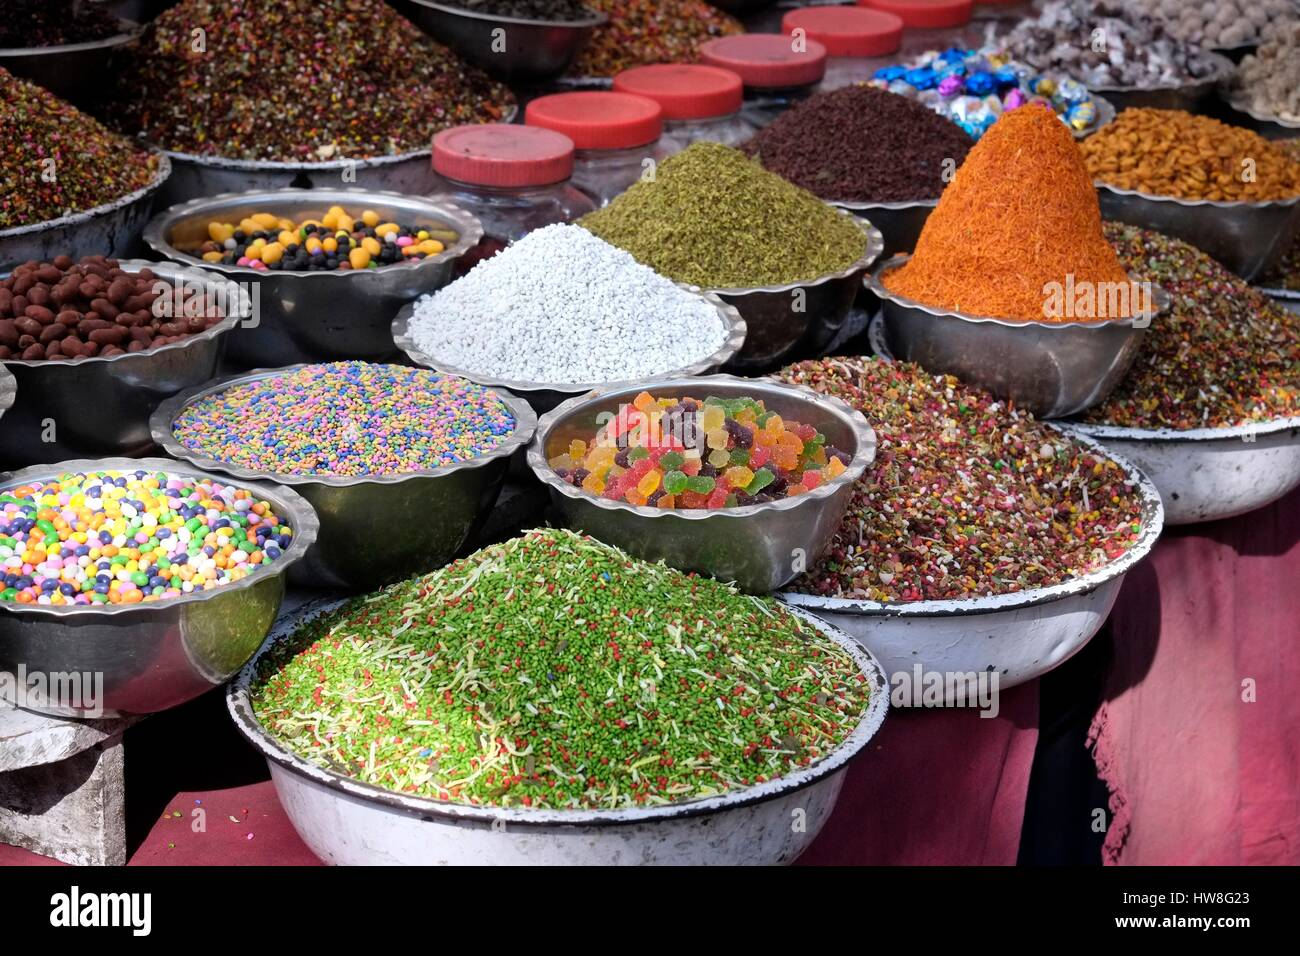 India, Gujarat State, Ahmedabad, listed as World Heritage by UNESCO, bowls of spices and sweets on an Indian market - Stock Image